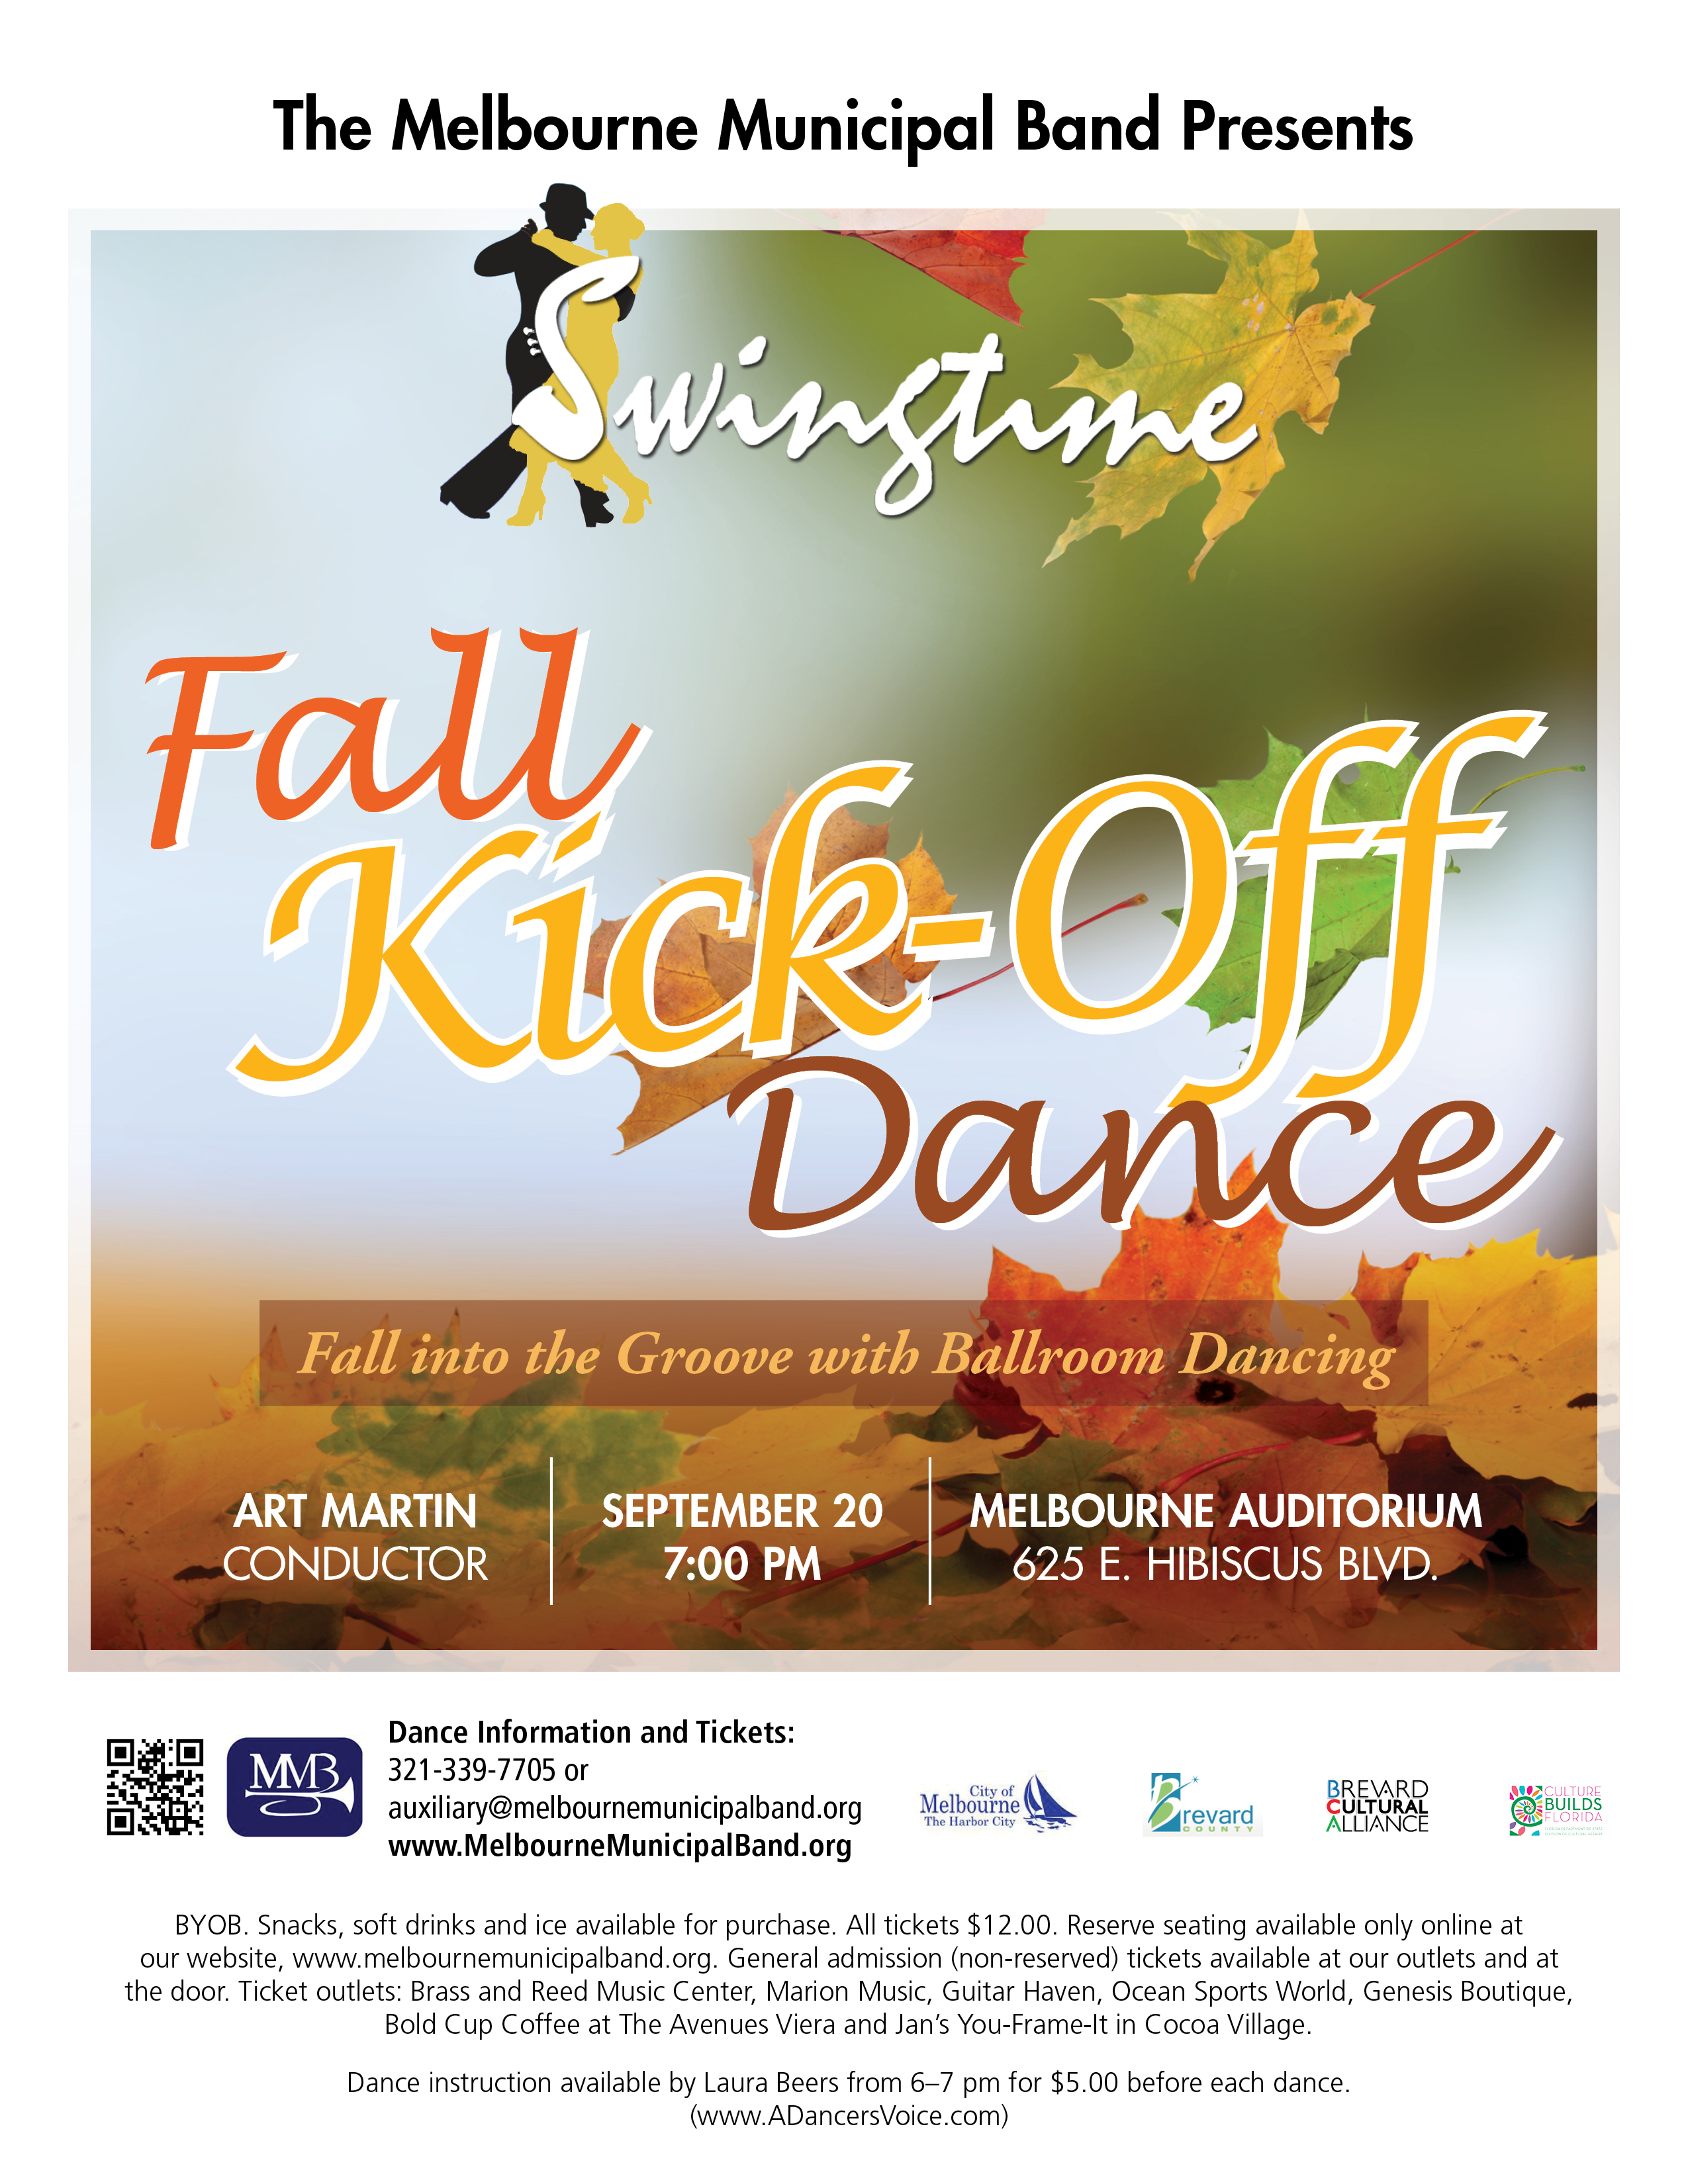 Fall Kick-Off Dance presented by The Melbourne Municipal Band